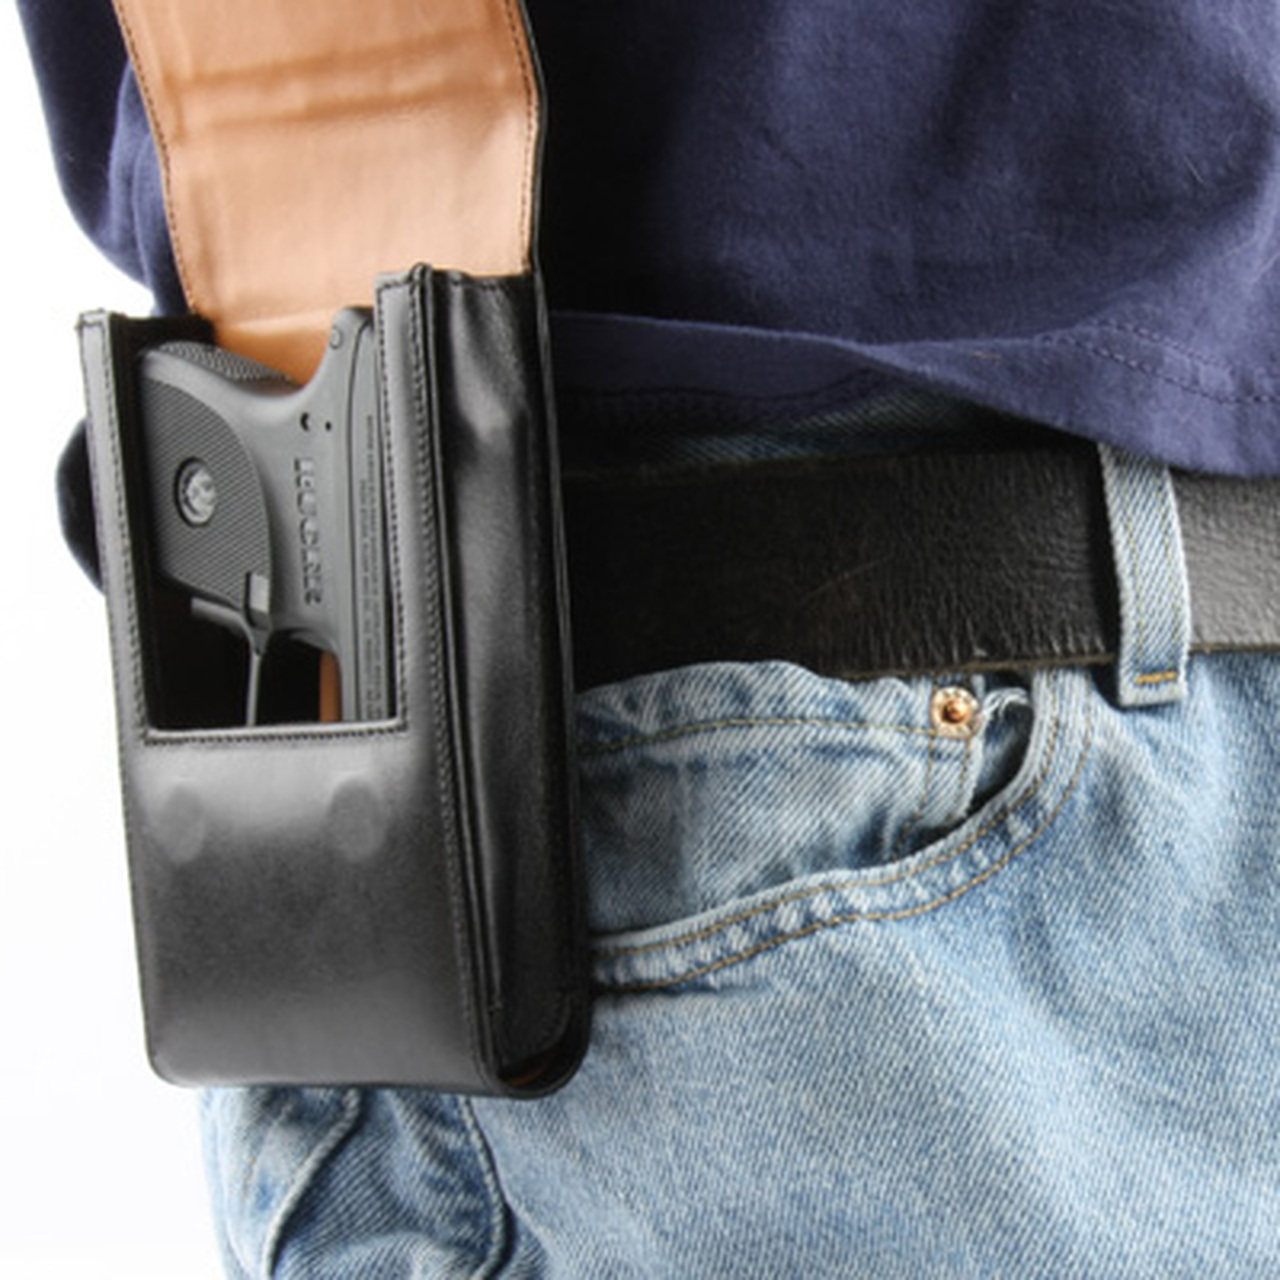 Bodyguard .38 Special Sneaky Pete Holster (Belt Clip)